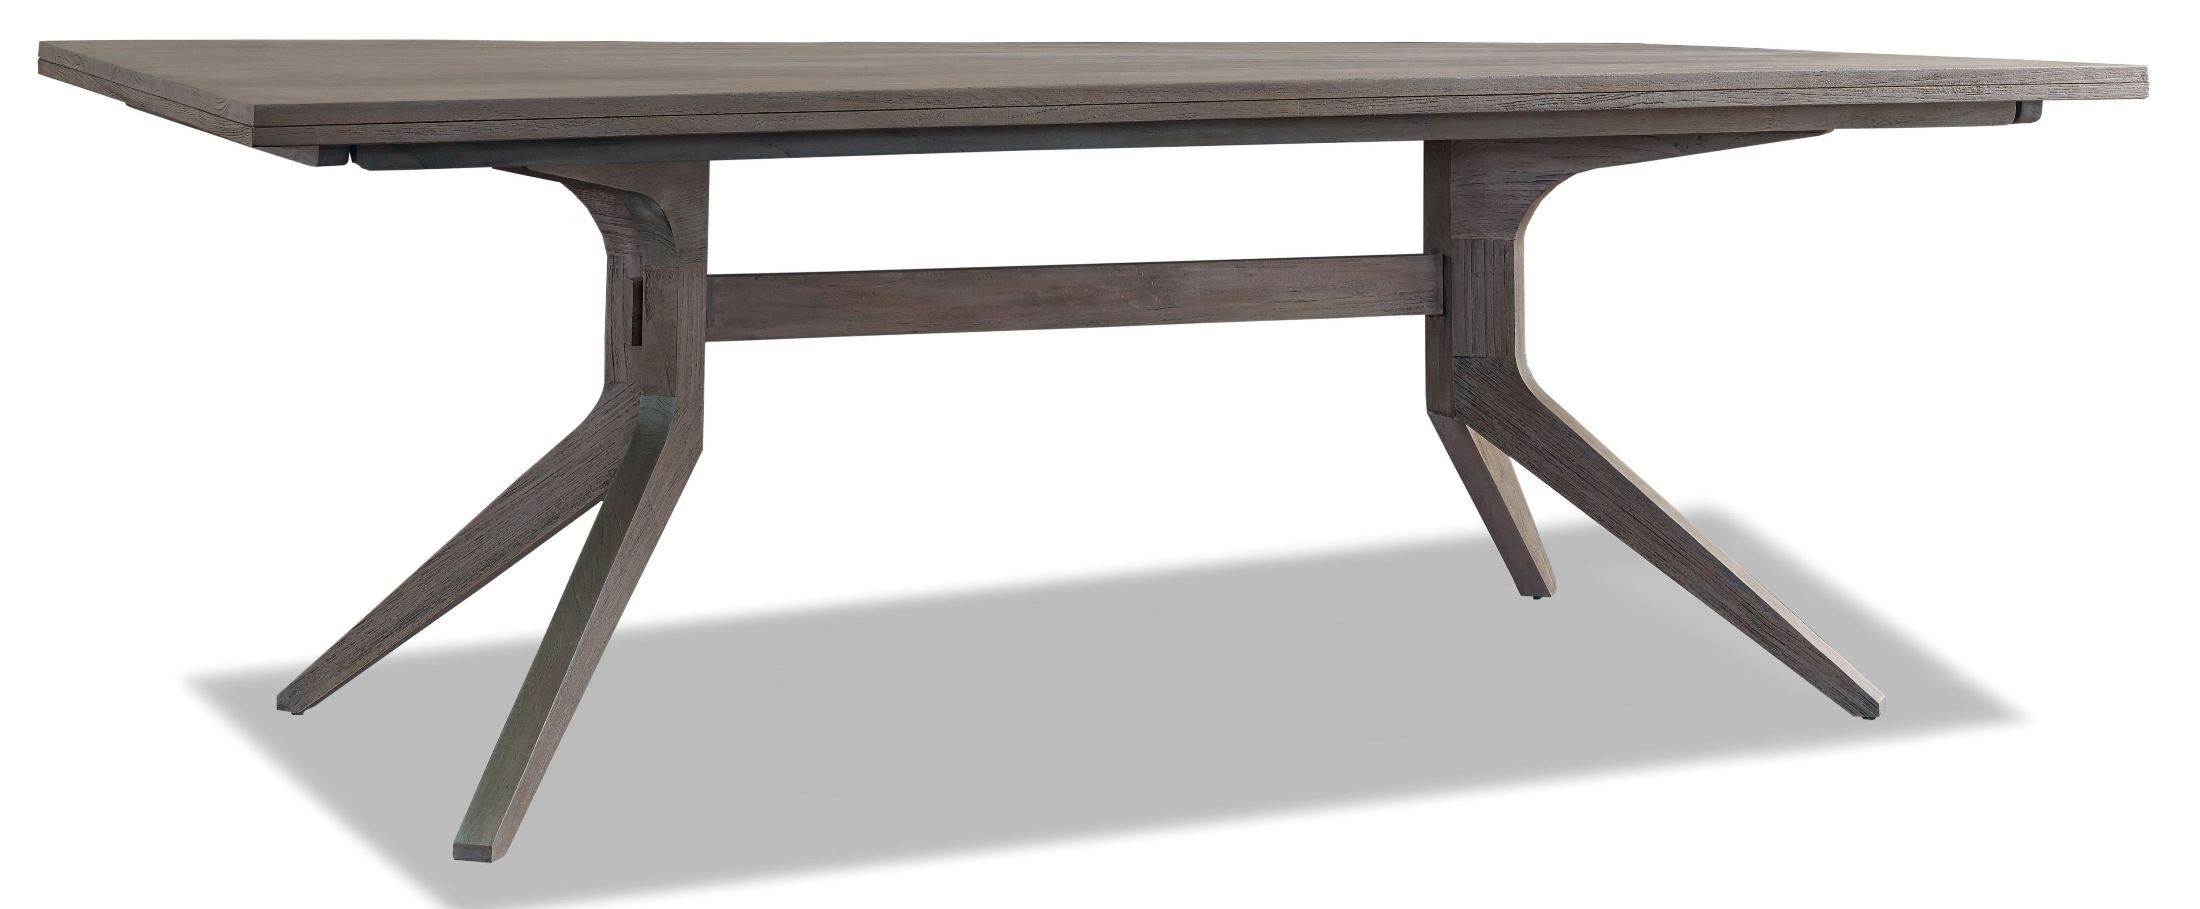 trestle dining room table from brownstone pl303 coleman furniture